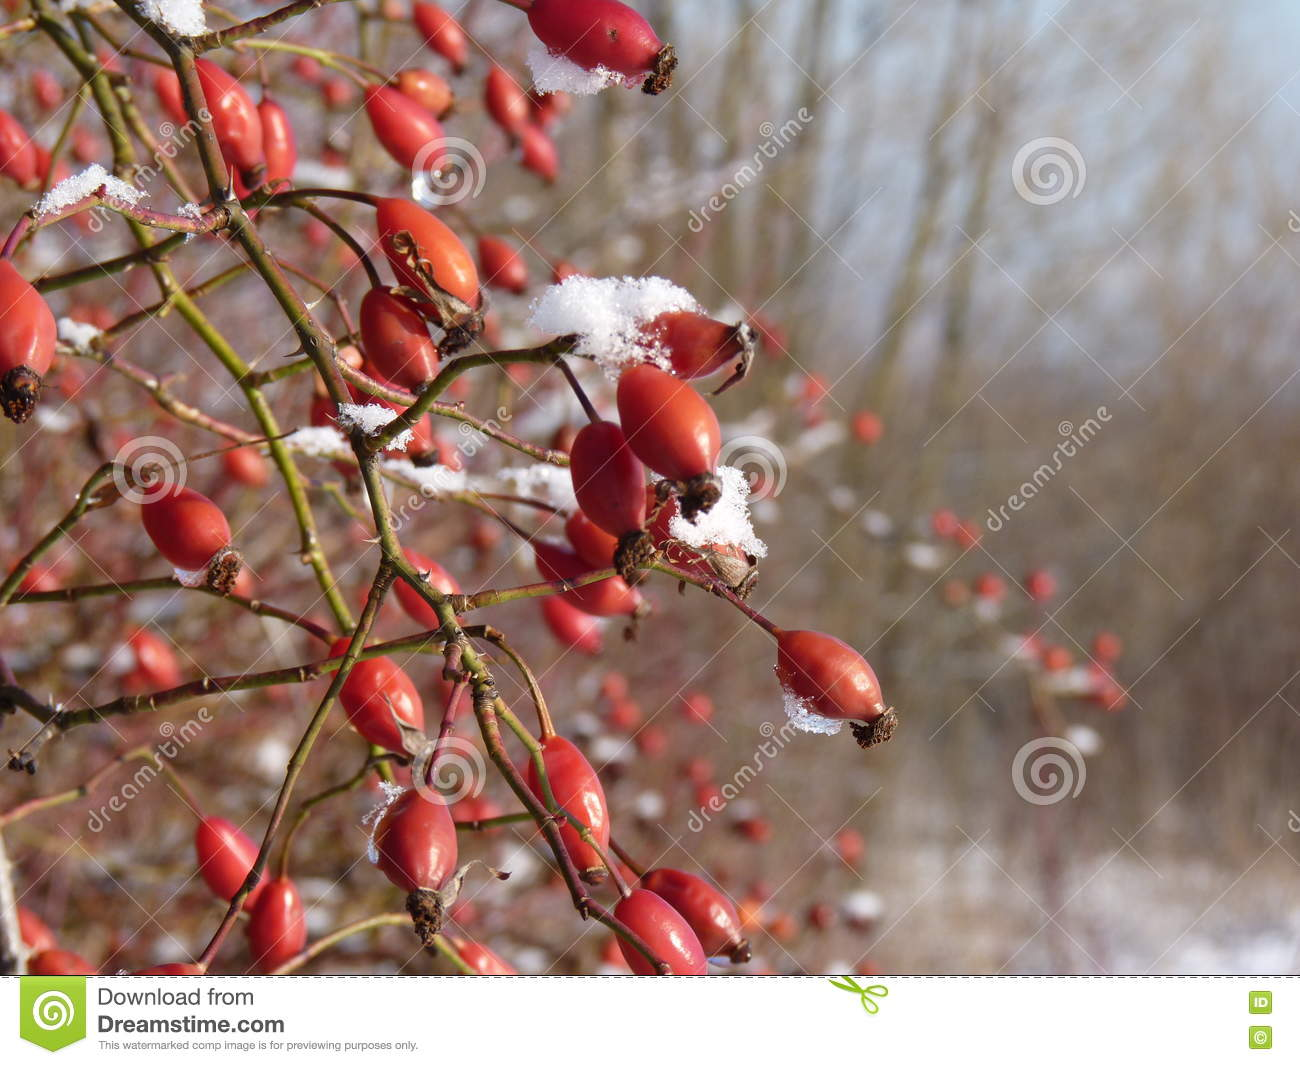 Wild Rose Red Berry Bush And Berries In Winter Red Rosehips In